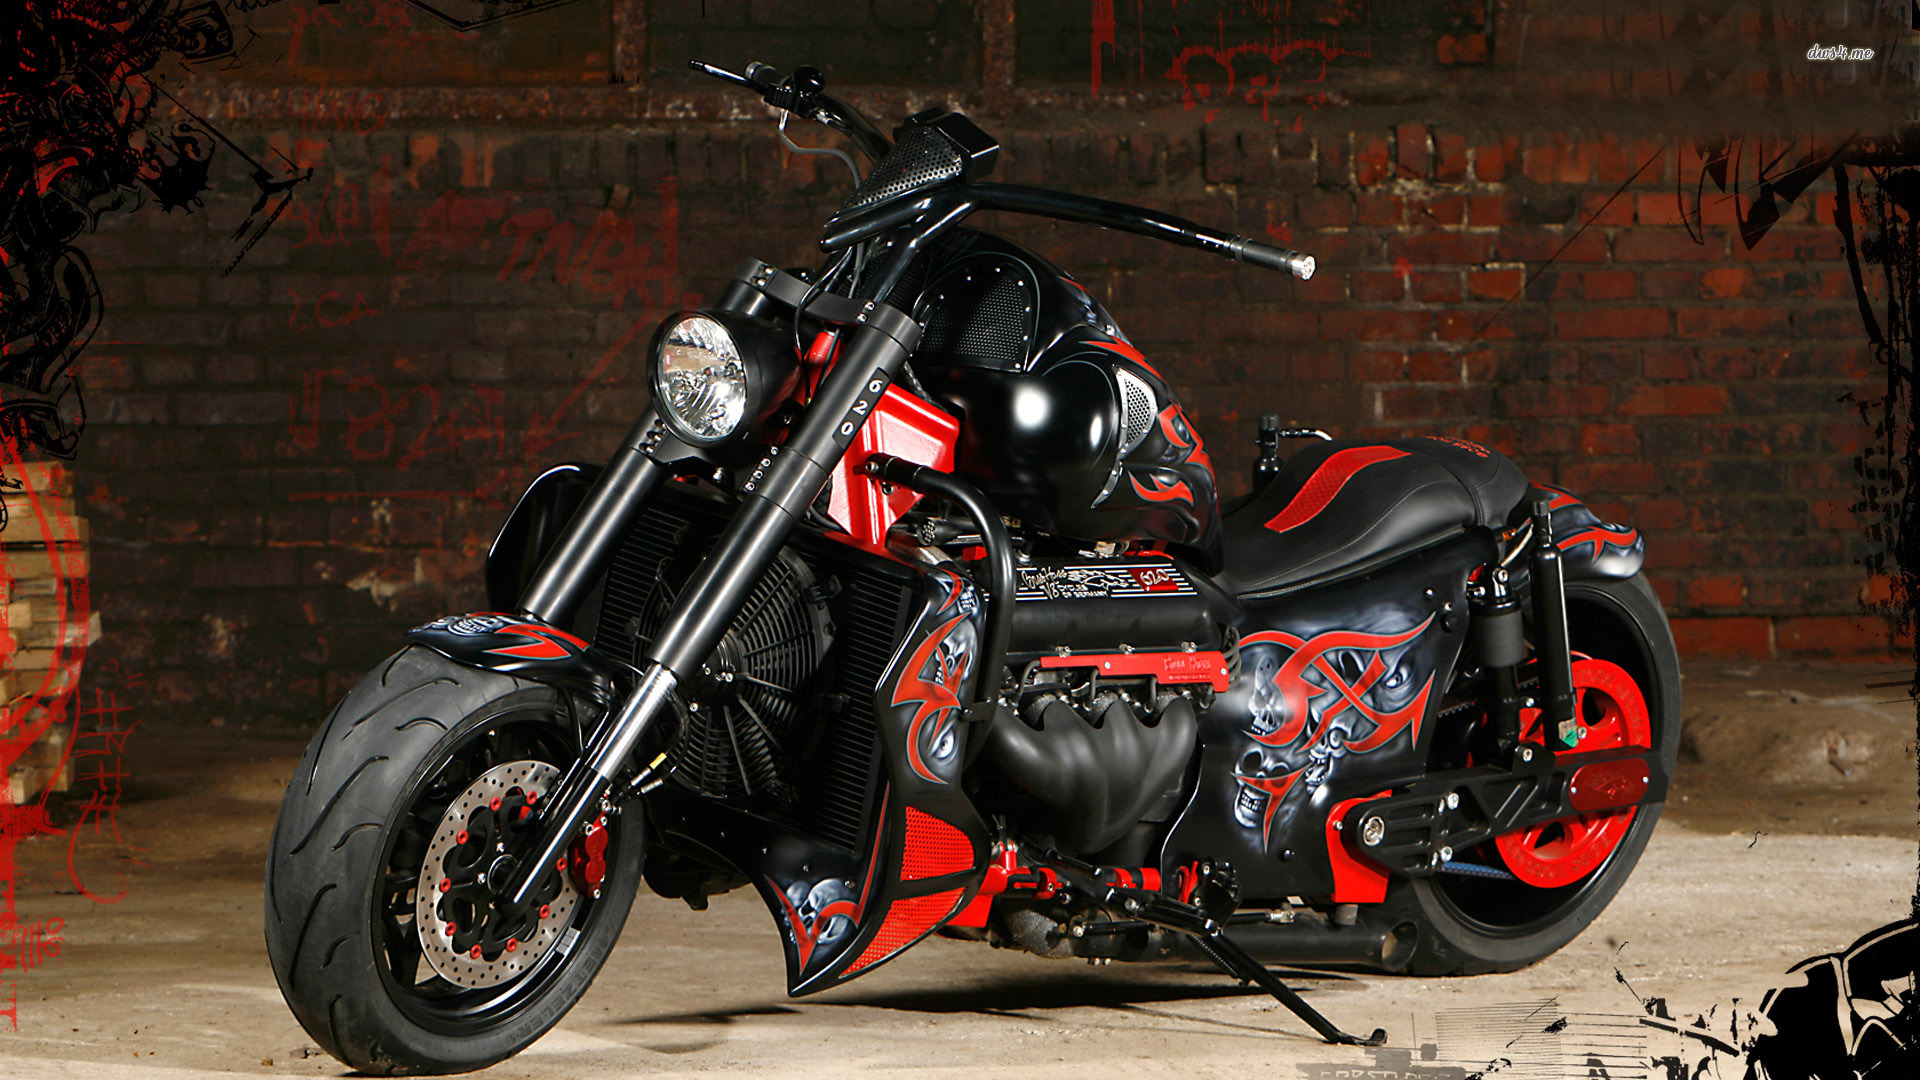 harley davidson wallpaper 1920x1080 hd